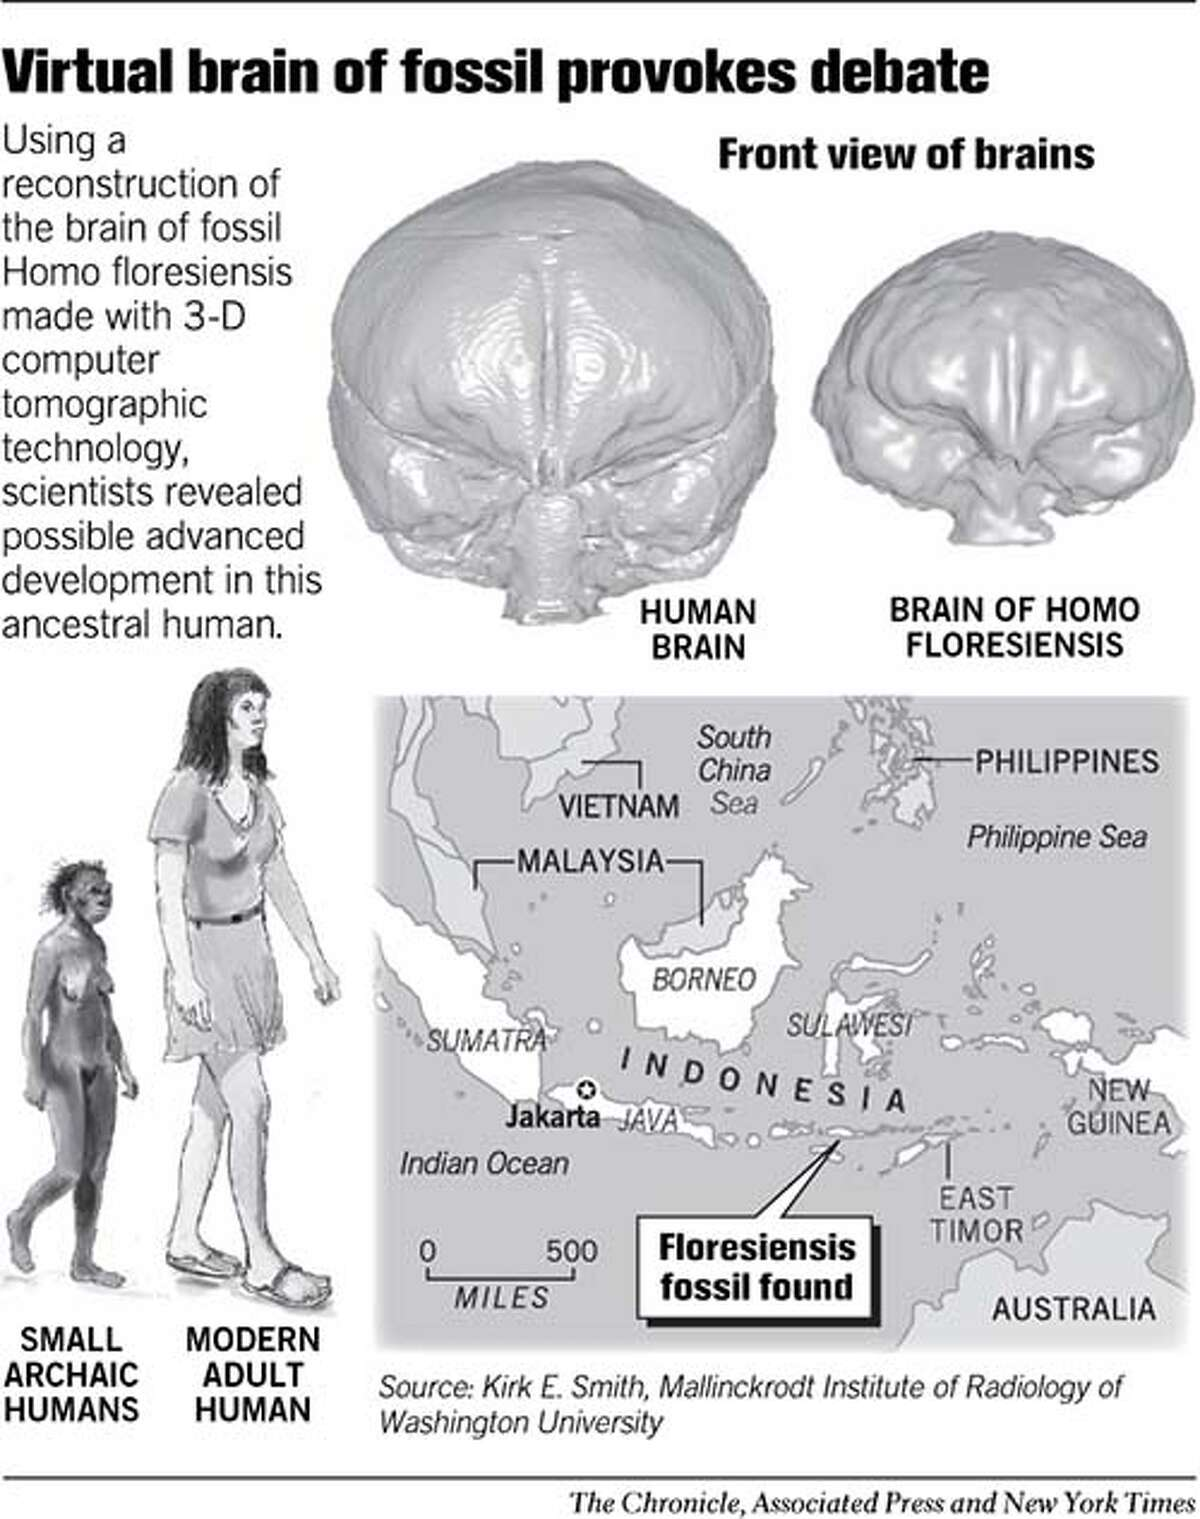 Virtual Brain of Fossil Provokes Debate. Chronicle Graphic